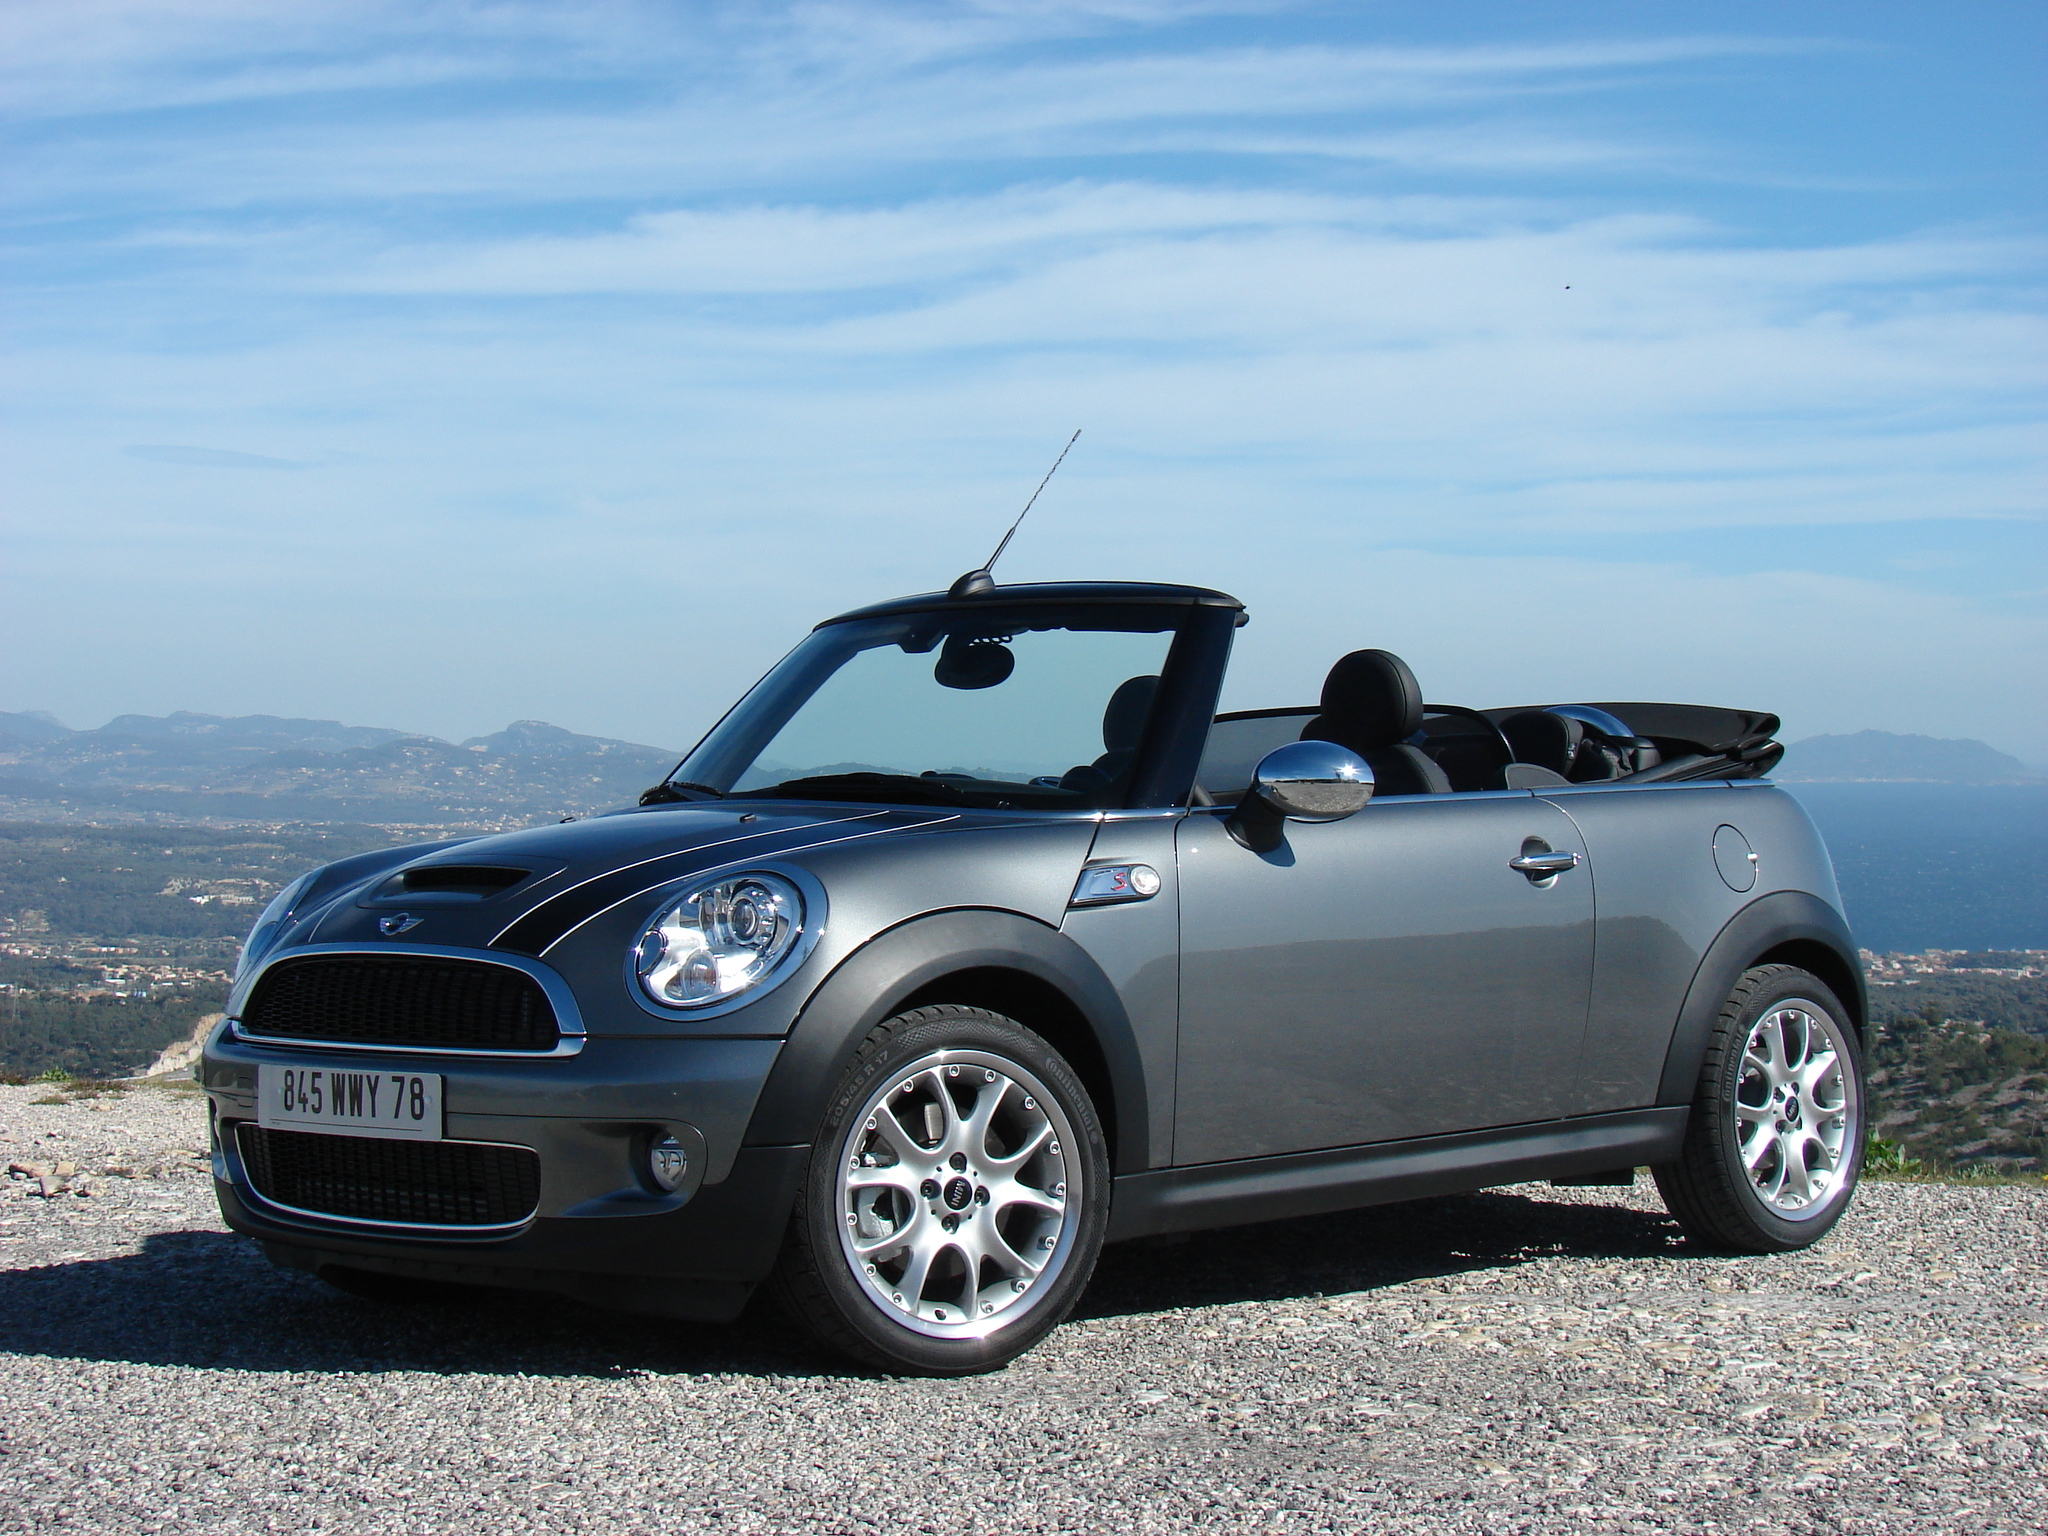 essai vid o mini cooper s cabriolet la star des beaux jours. Black Bedroom Furniture Sets. Home Design Ideas